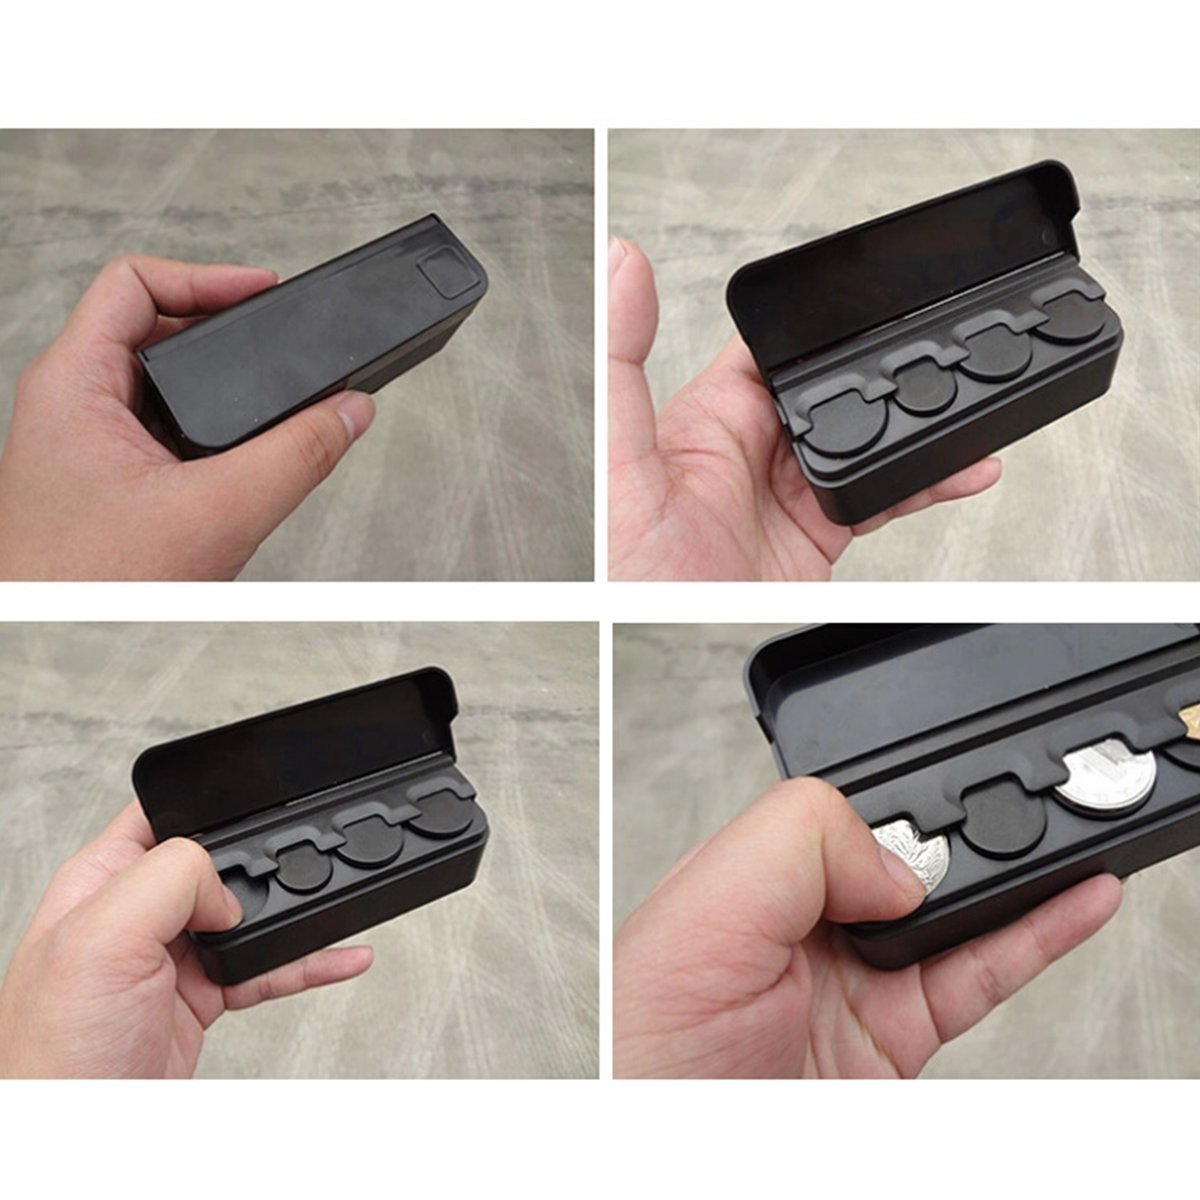 Black Car Coin Holder - Mini Coin Organizer - 4 Slots For Each Coin Type (2 Pack) by LiveOut (Image #4)